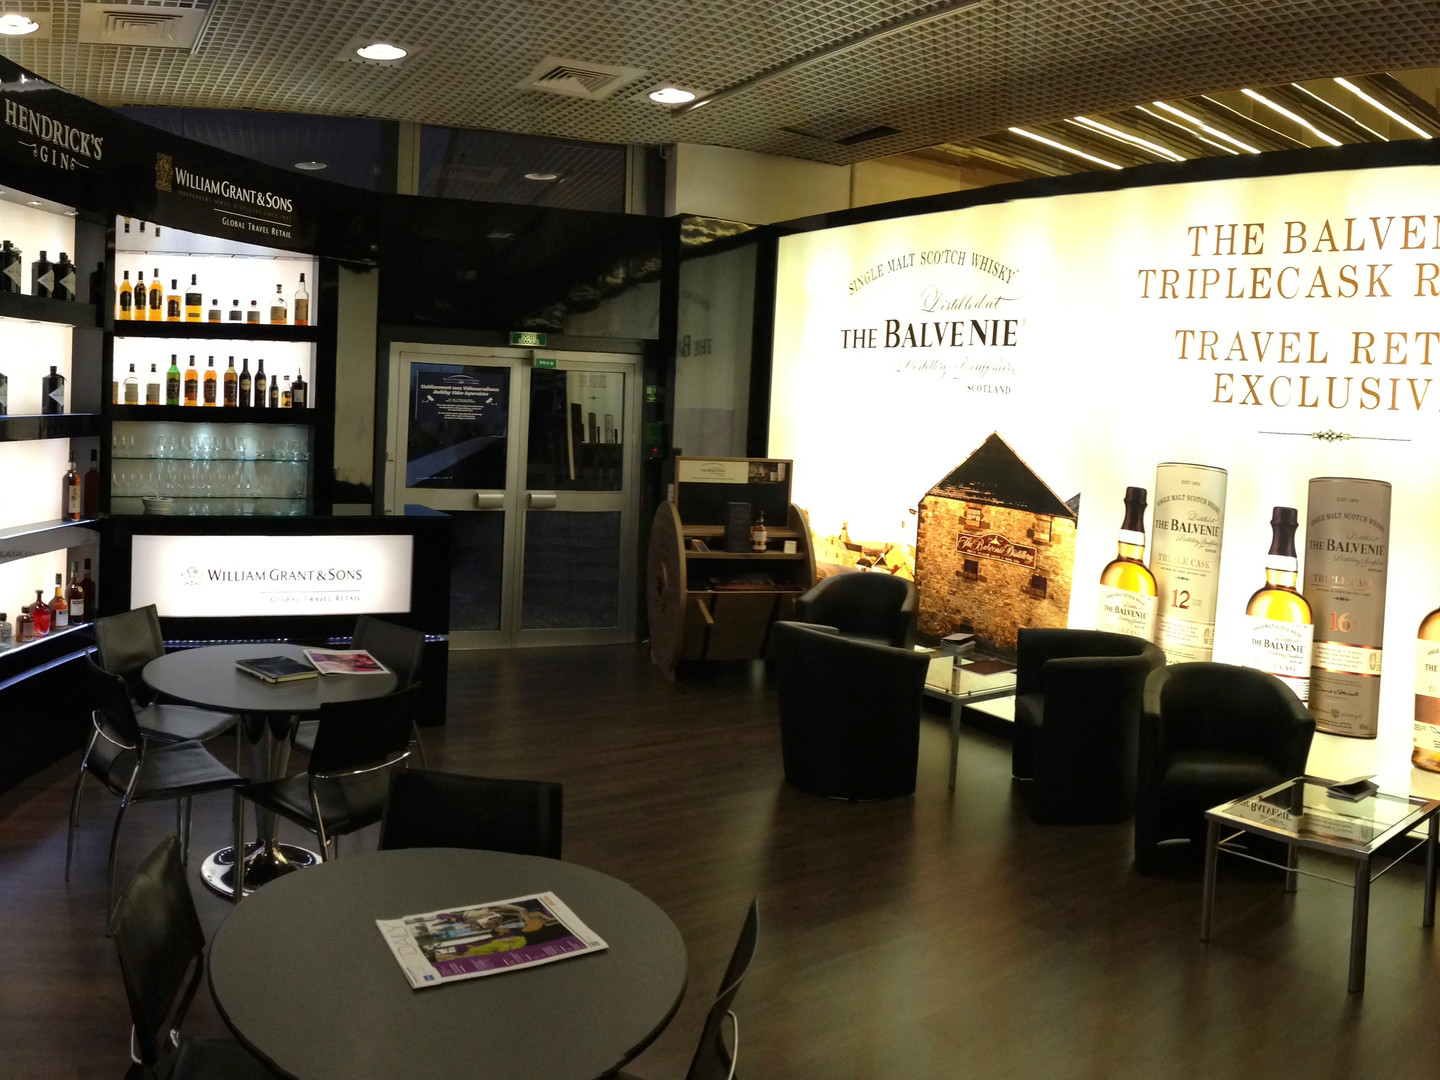 Panoramic view of the interior of William Grant's stand in Cannes